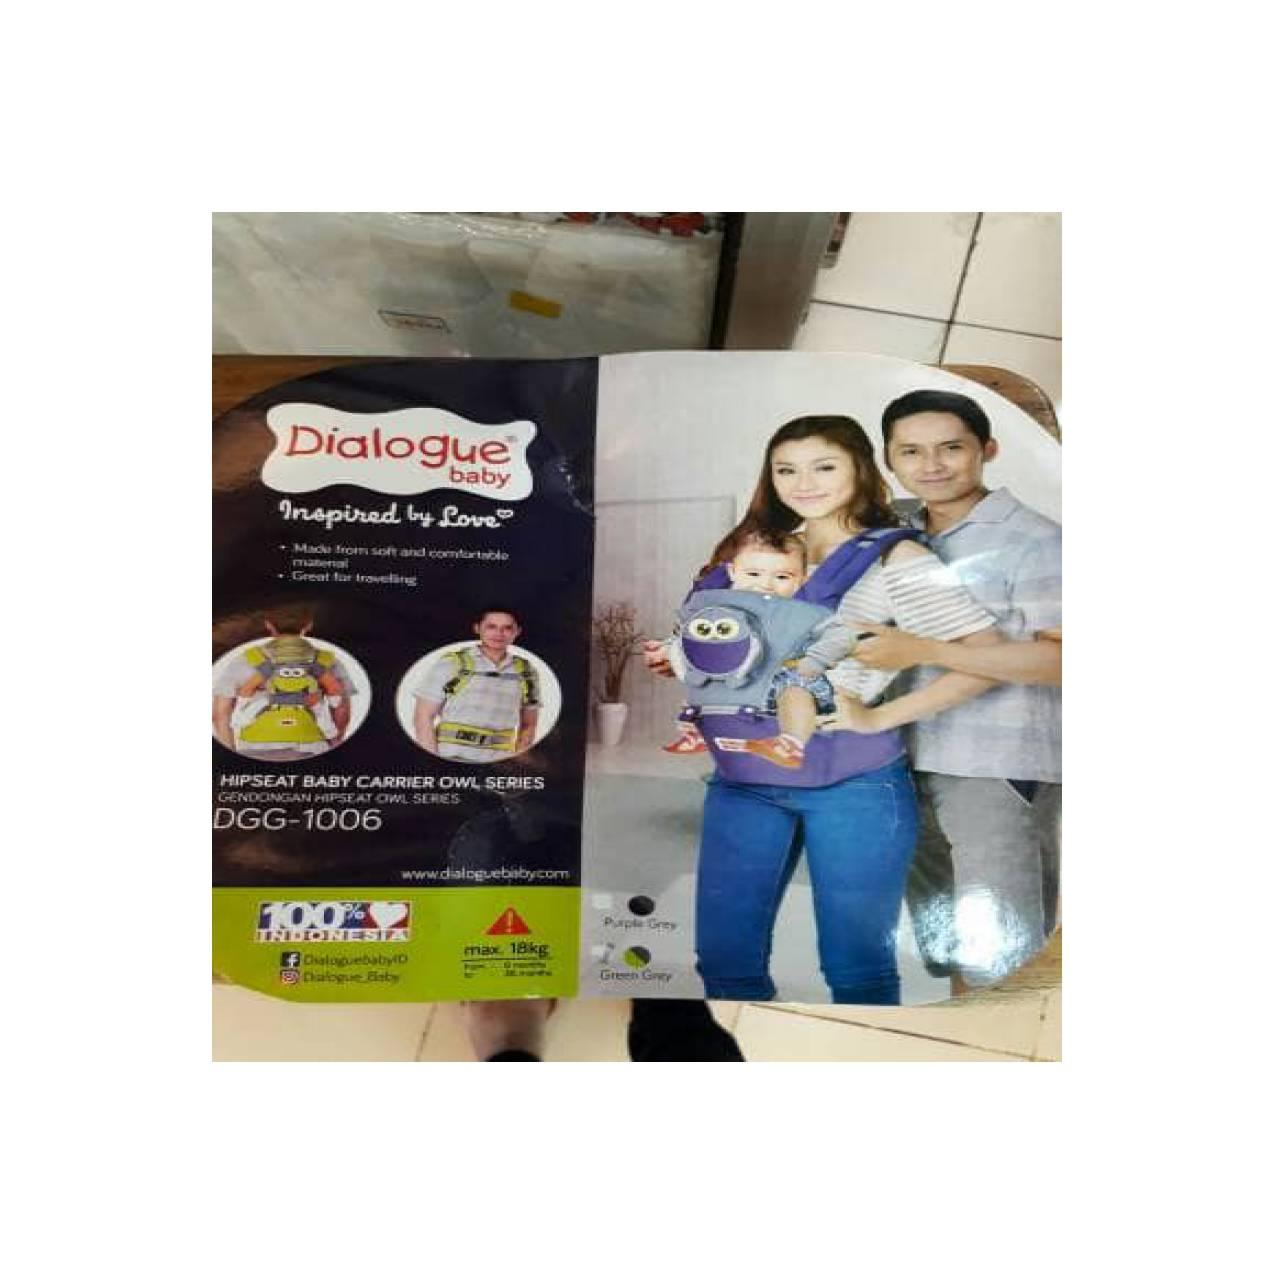 Buy Sell Cheapest Baby Carrier Dialogue Best Quality Product Deals 2 In 1 Sirkulasi Owl Series Hijau Gendongan Hipseat